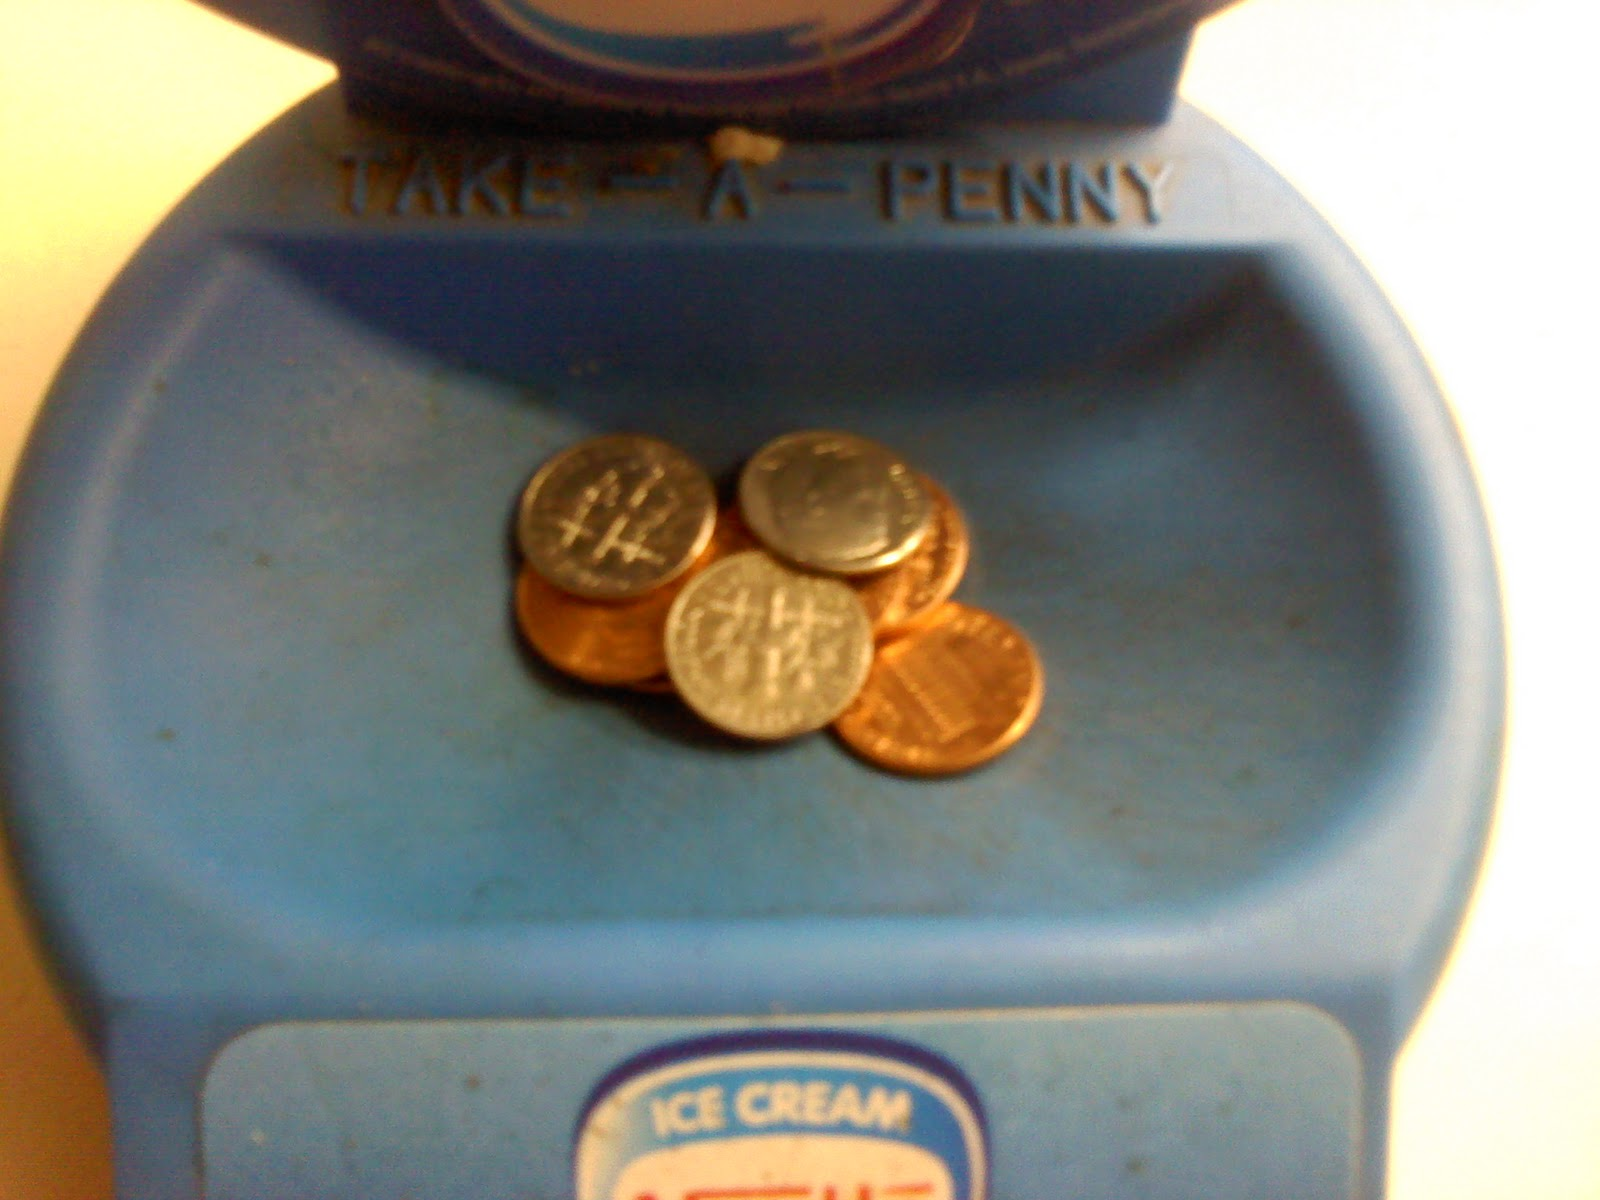 penny penny choose opt